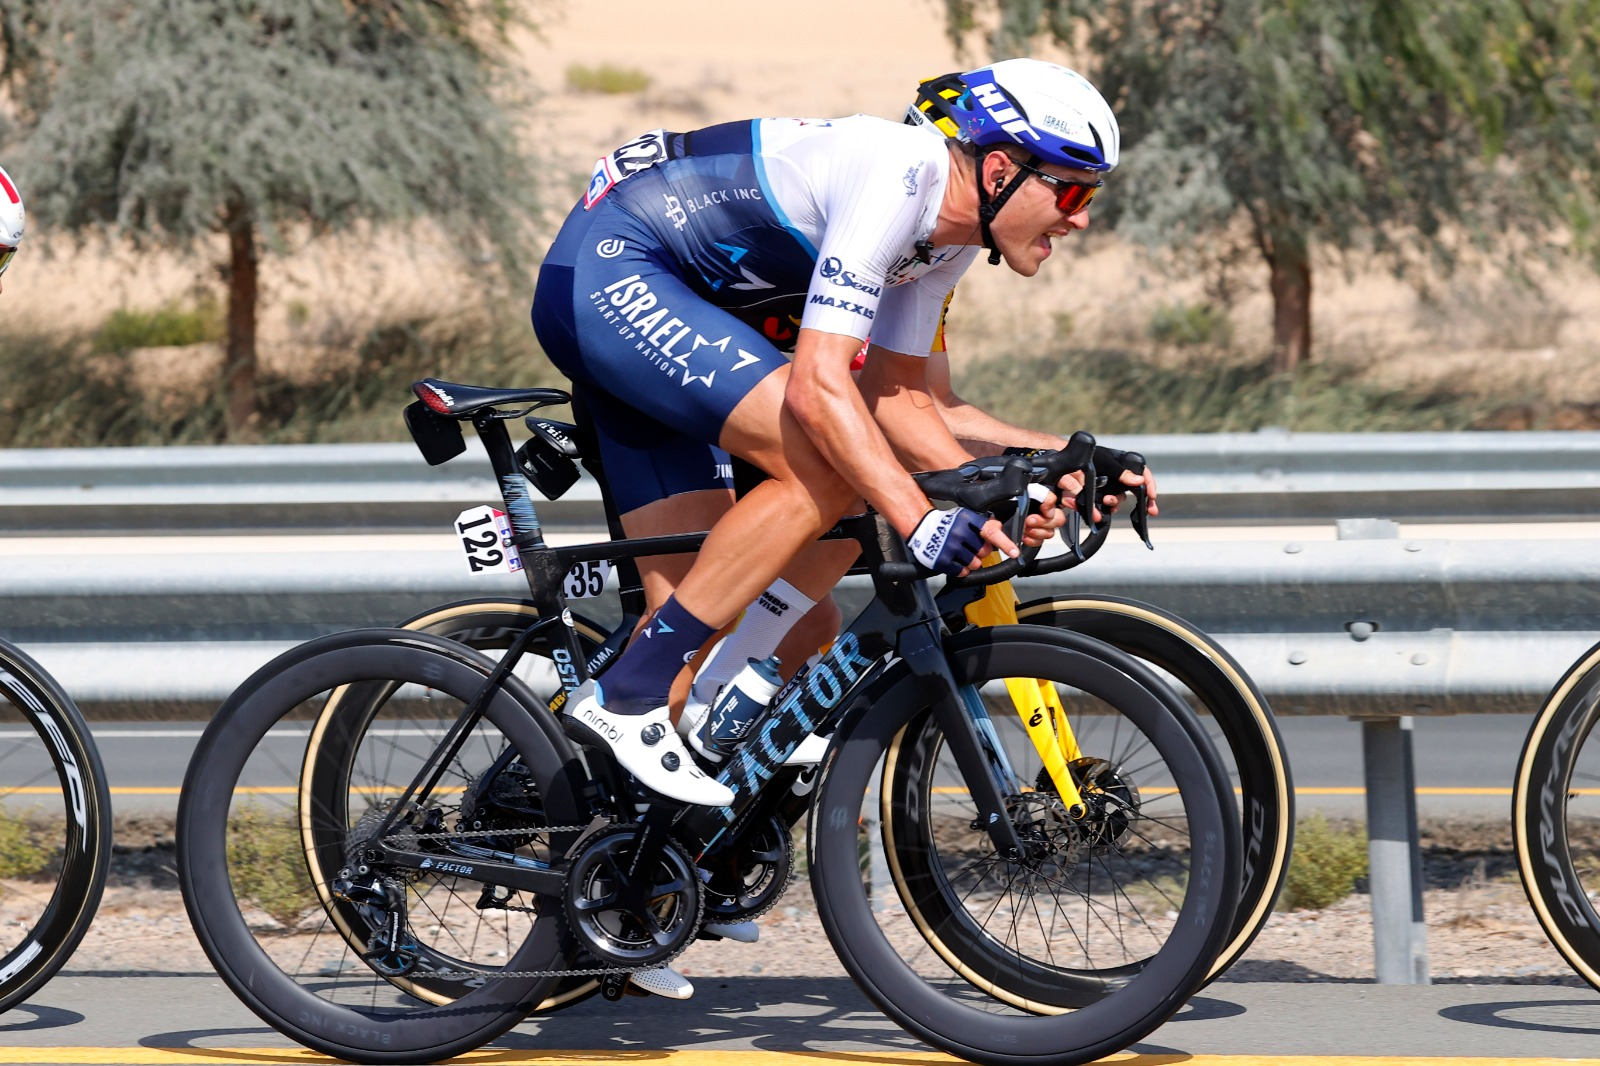 ISN tries to light up race up again, but echelons don't hold to finish of stage 6 UAE